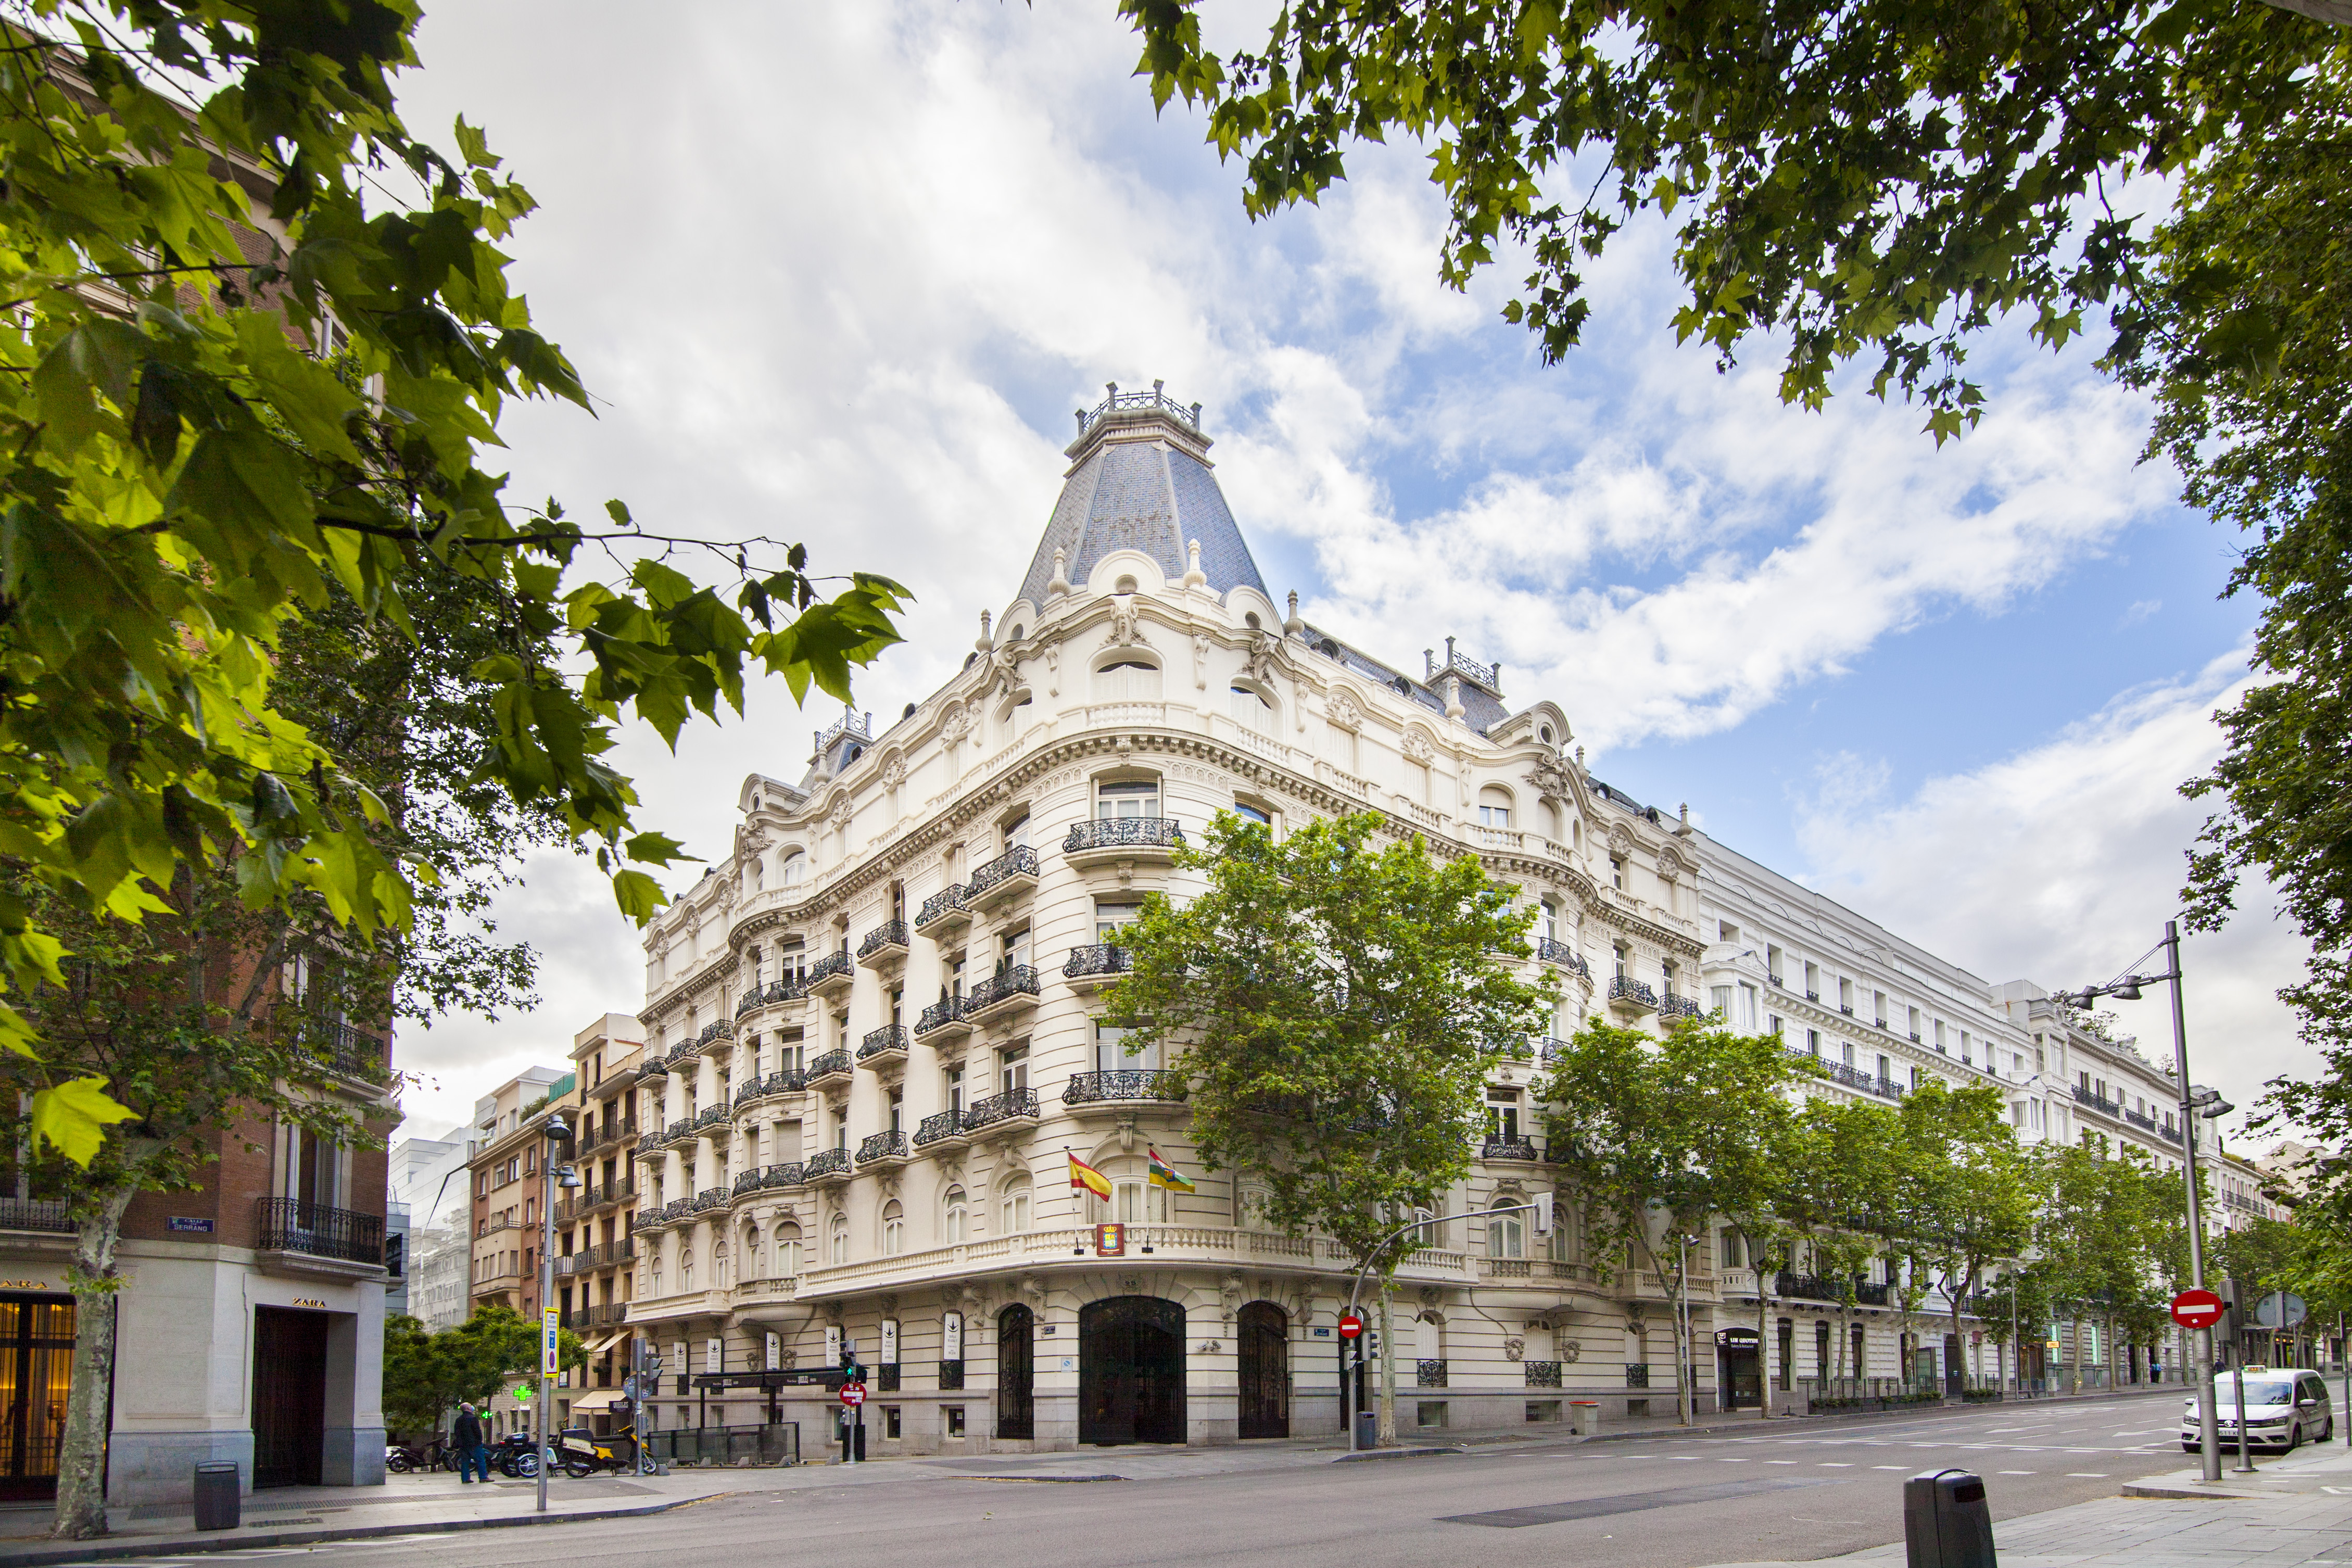 Foreign buyers consolidate in Madrid's luxury real estate market